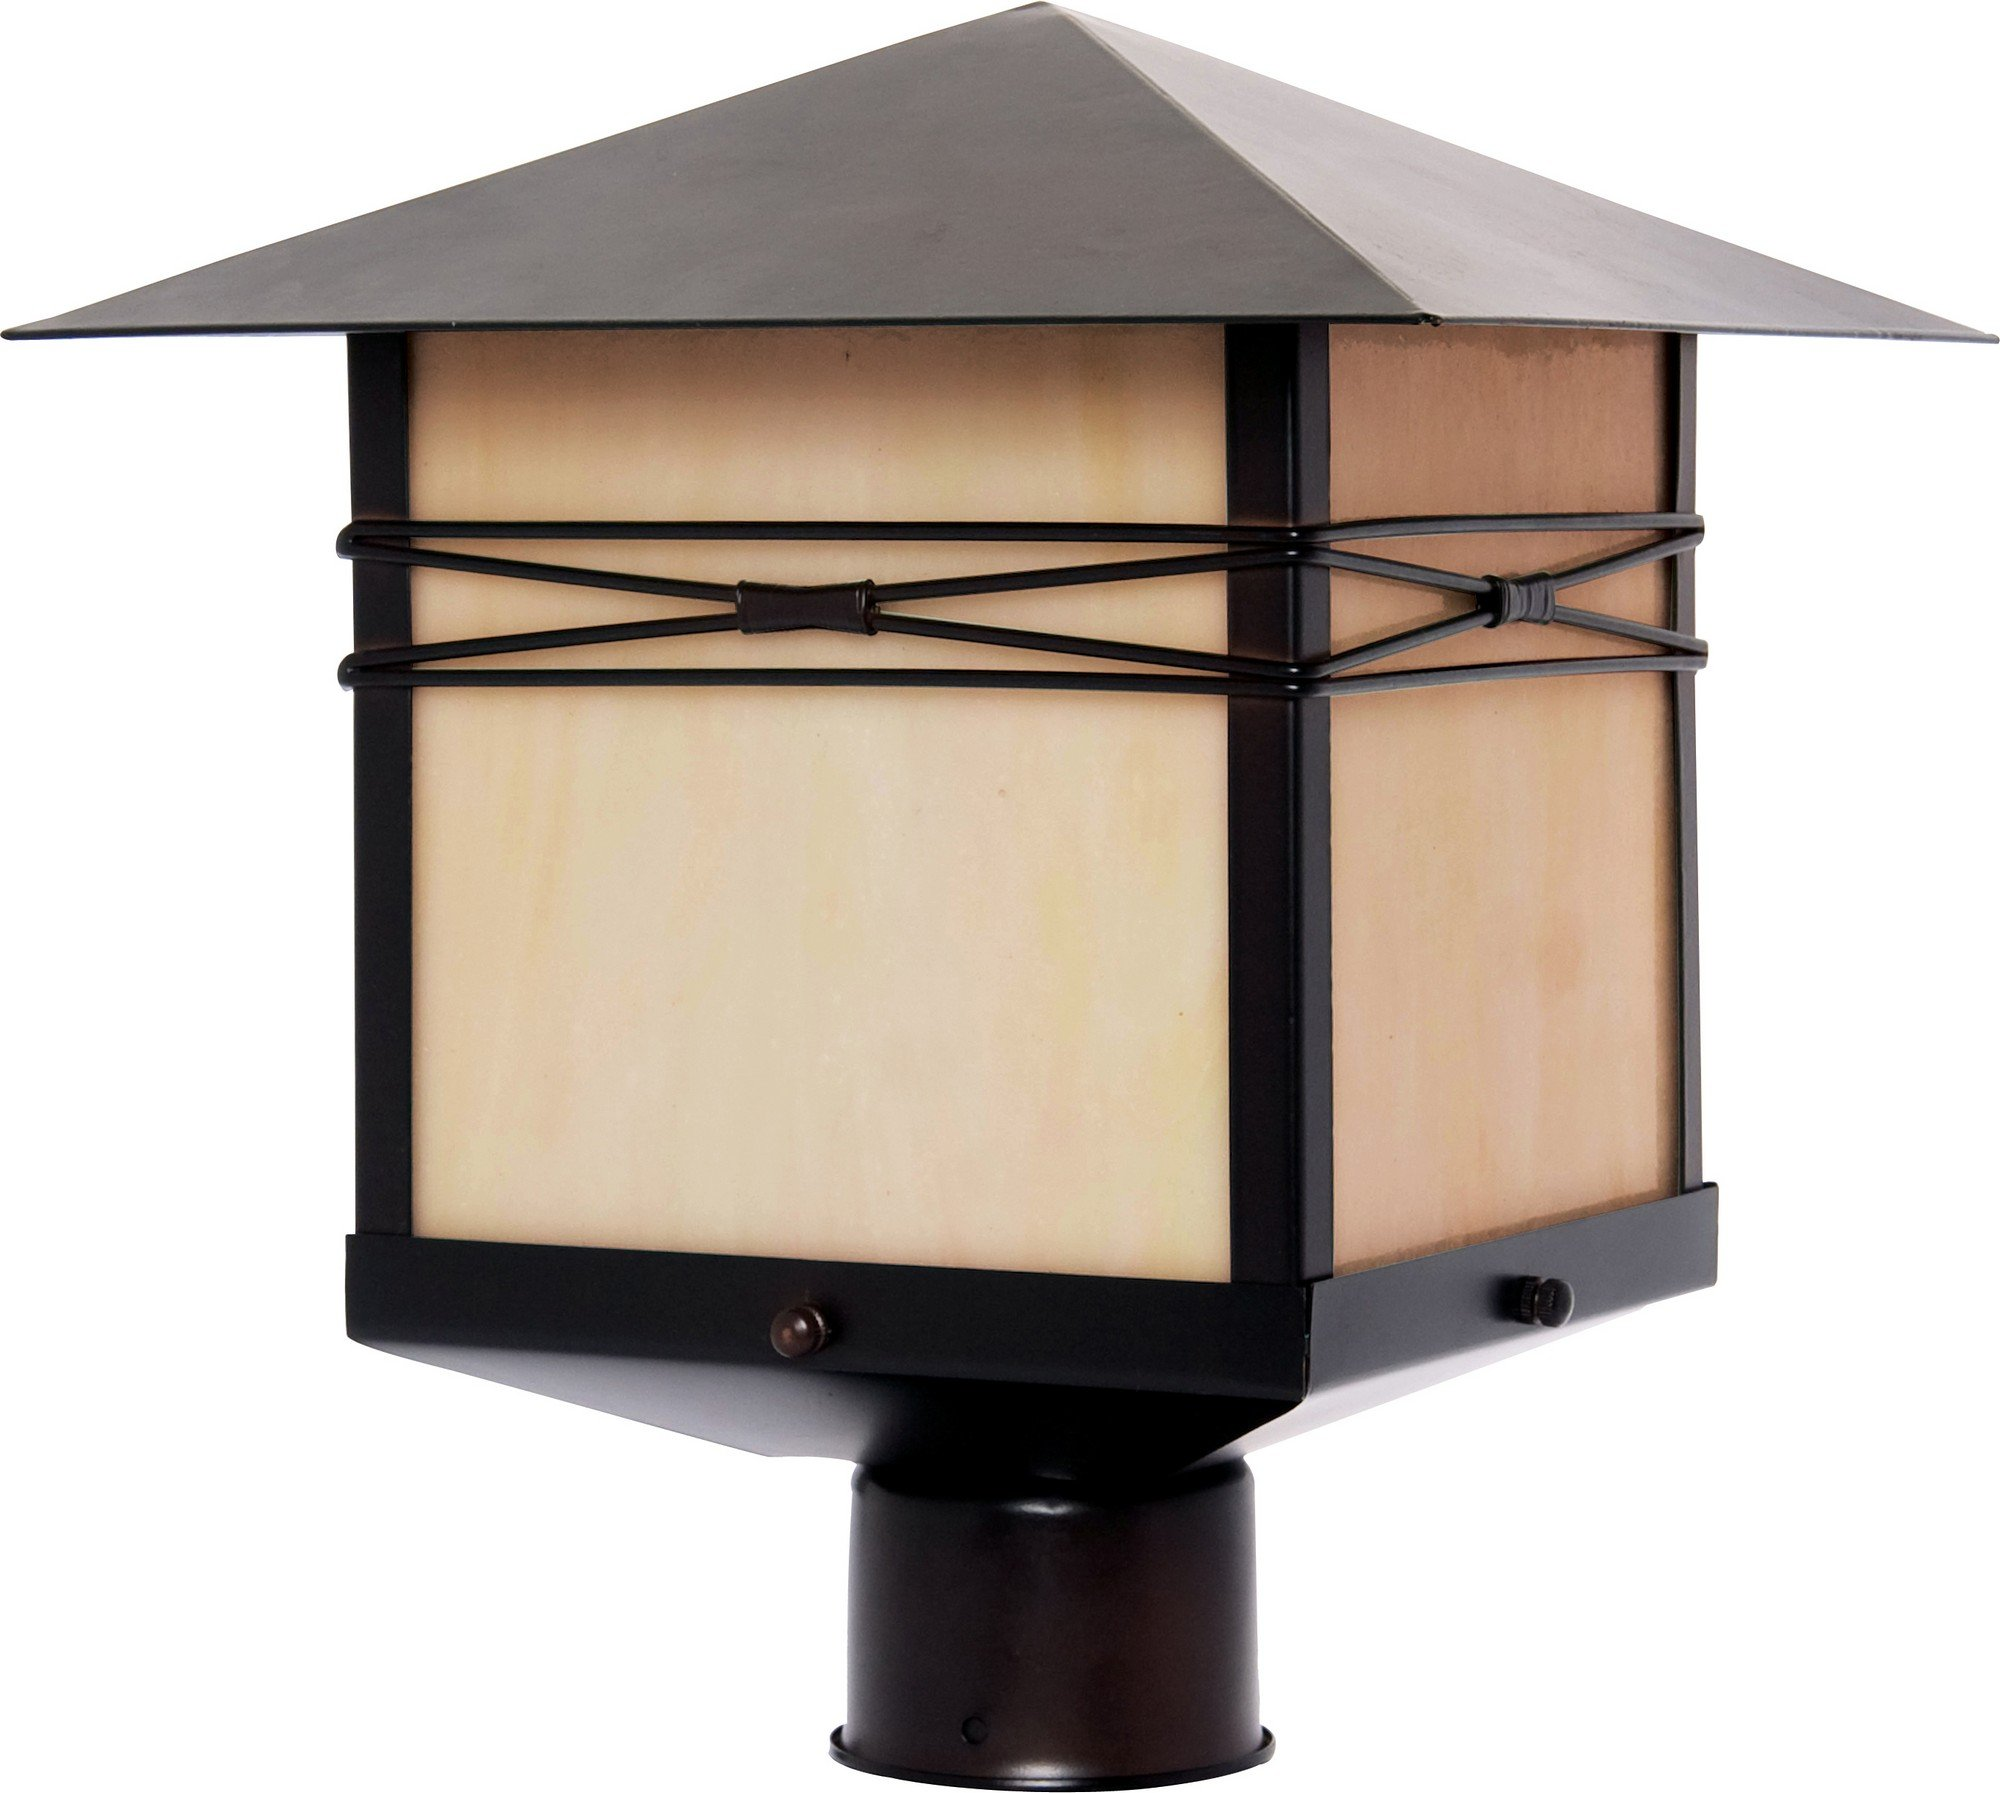 Maxim 8044IRBU Taliesin 1-Light Outdoor Pole/Post Lantern, Burnished Finish, Iridescent Glass, MB Incandescent Incandescent Bulb , 100W Max., Dry Safety Rating, Standard Dimmable, Glass Shade Material, 5750 Rated Lumens